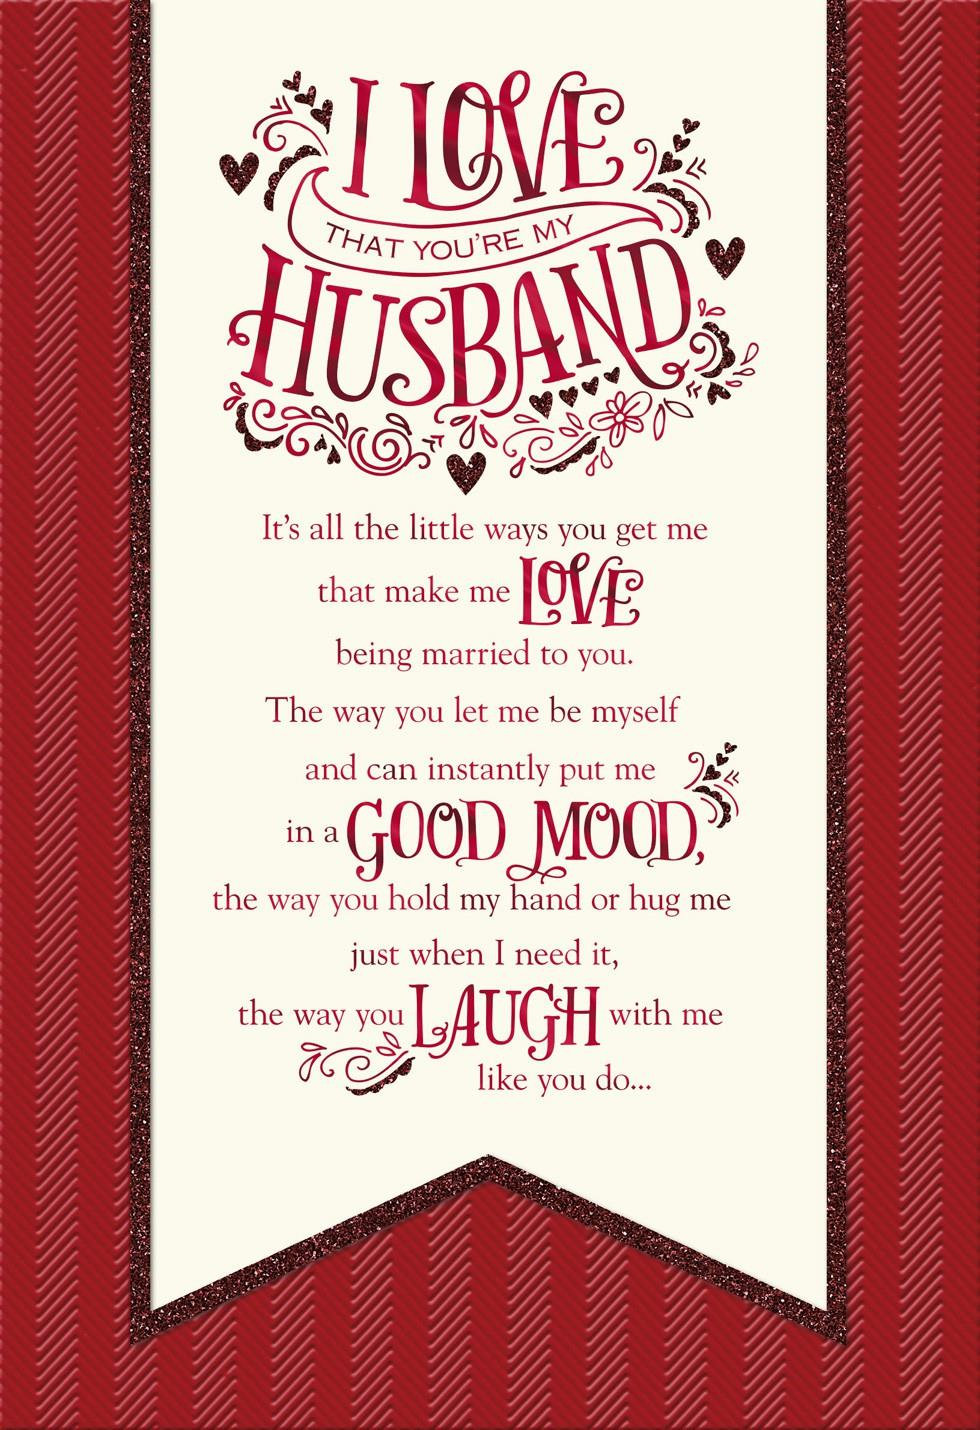 The Reasons I Love You Banner Valentines Day Card for Husband – Valentines Day Card for Husband